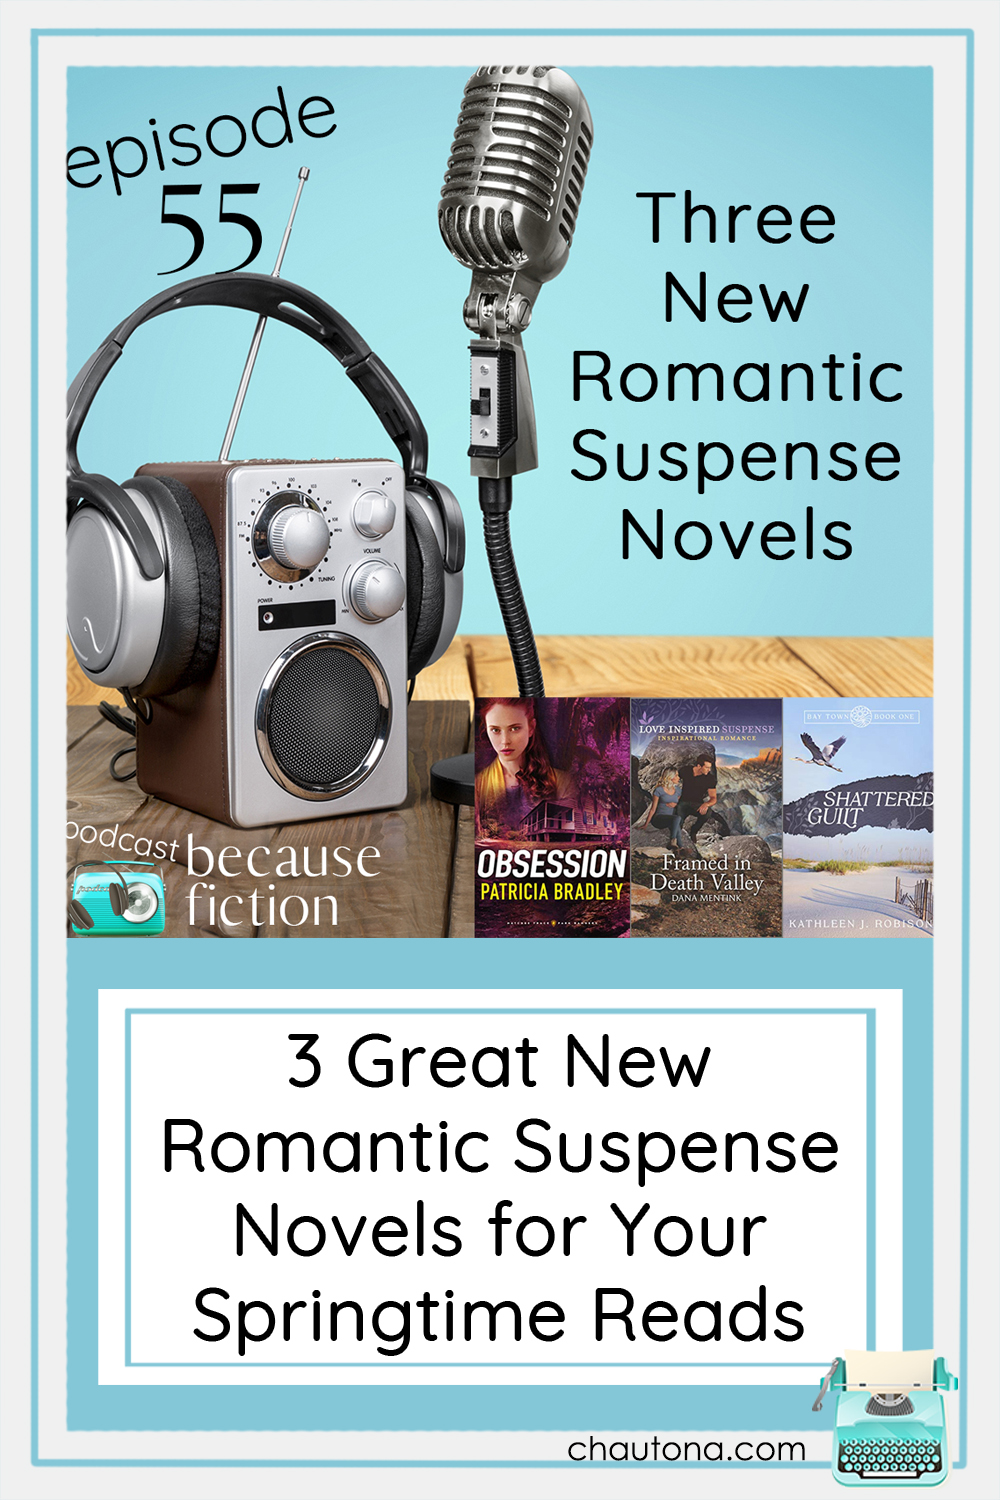 Patricia Bradley, Dana Mentink, and debut author, Kathleen J. Robison each have a fascinating romantic suspense novel for us to hear about! via @chautonahavig